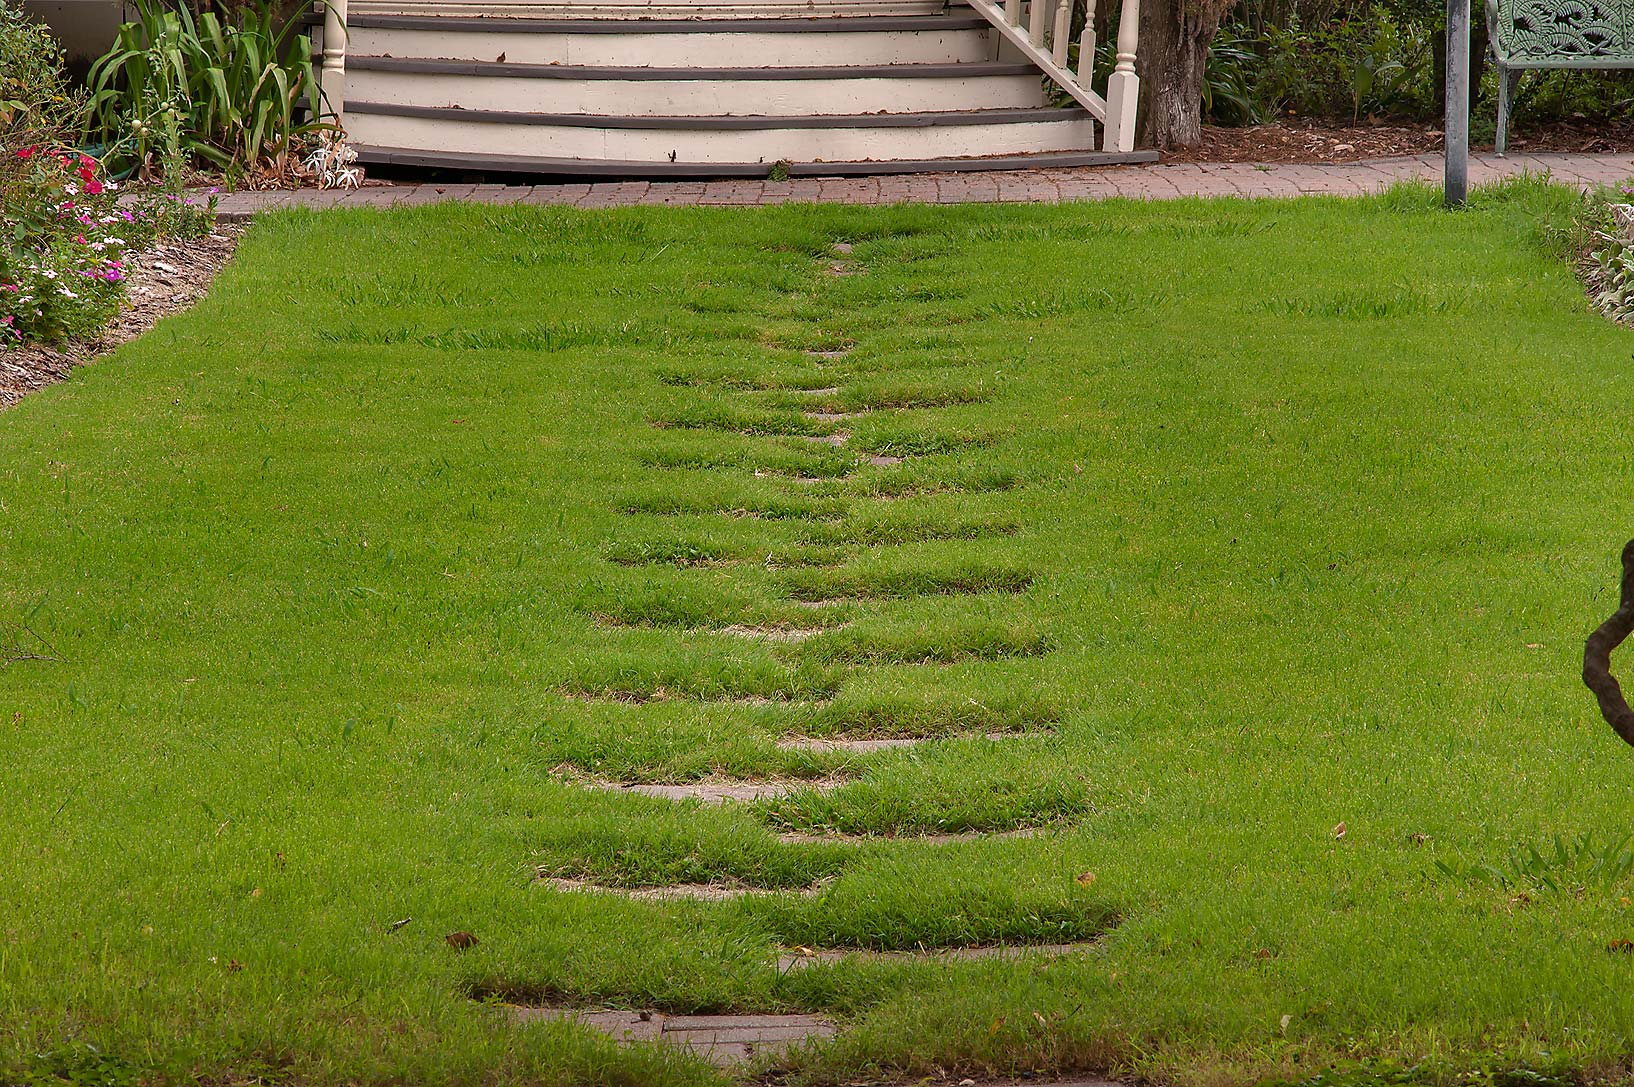 Grassy path in Antique Rose Emporium. Independence, Texas